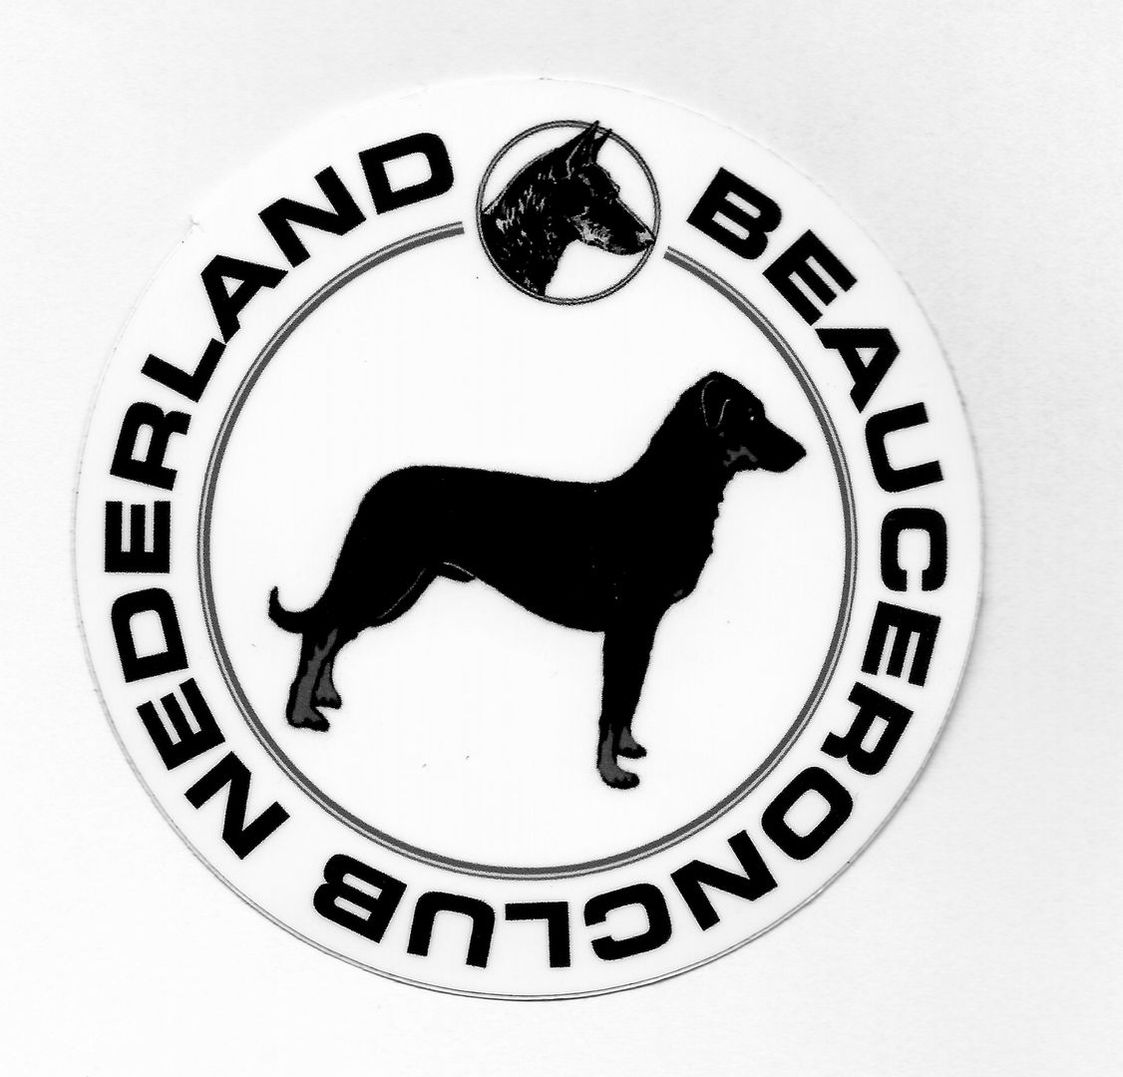 Beauceron rasvereniging